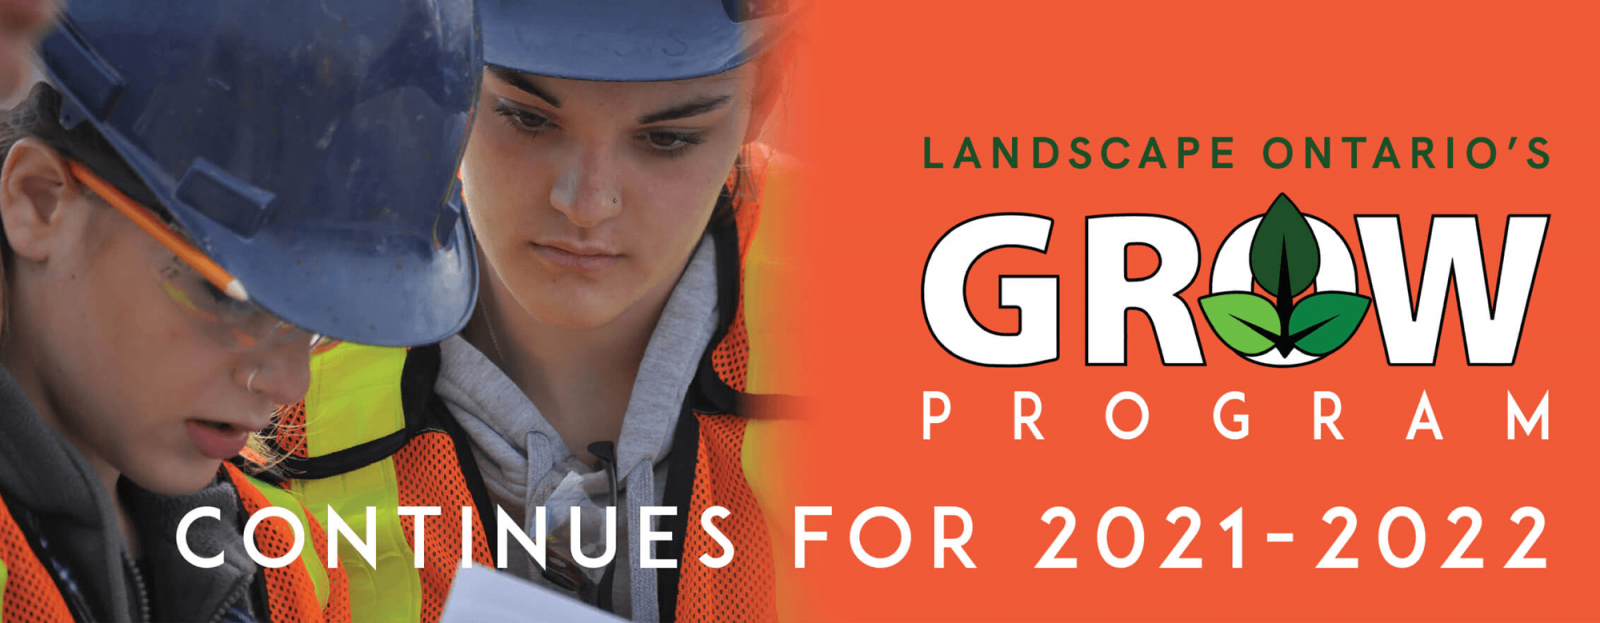 GROW Program continues for 2021-2022